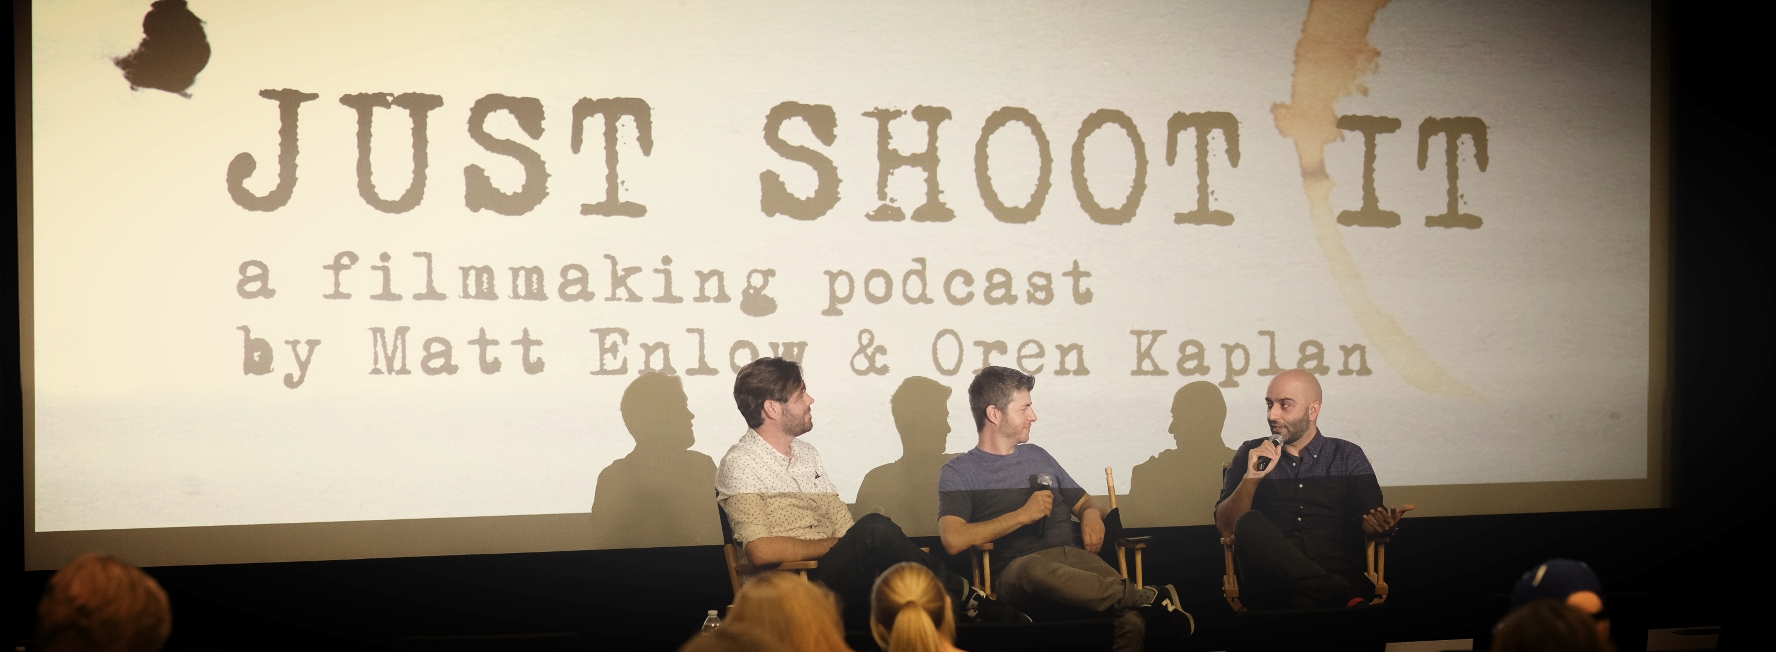 A live show for USC's Talent Week with Brooklyn Nine-Nine and Last Man on Earth director Payman Benz.